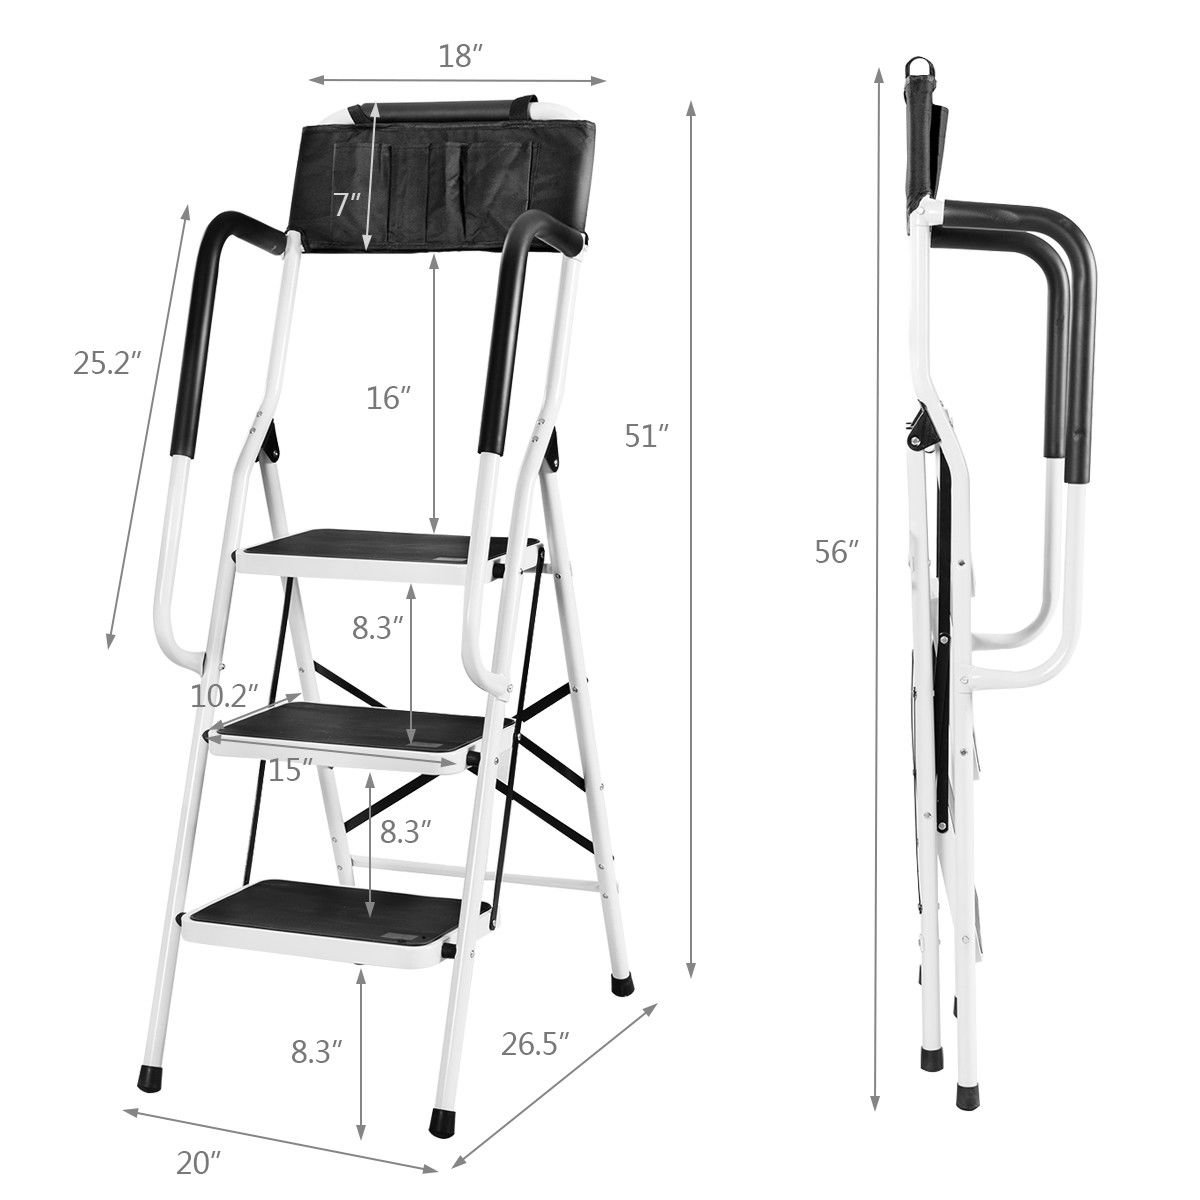 Giantex Folding 3 Step Ladder W/Padded Side Handrails Non-Slip Steps Tool Pouch Caddy Lightweight Powerful Capacity by Giantex (Image #7)